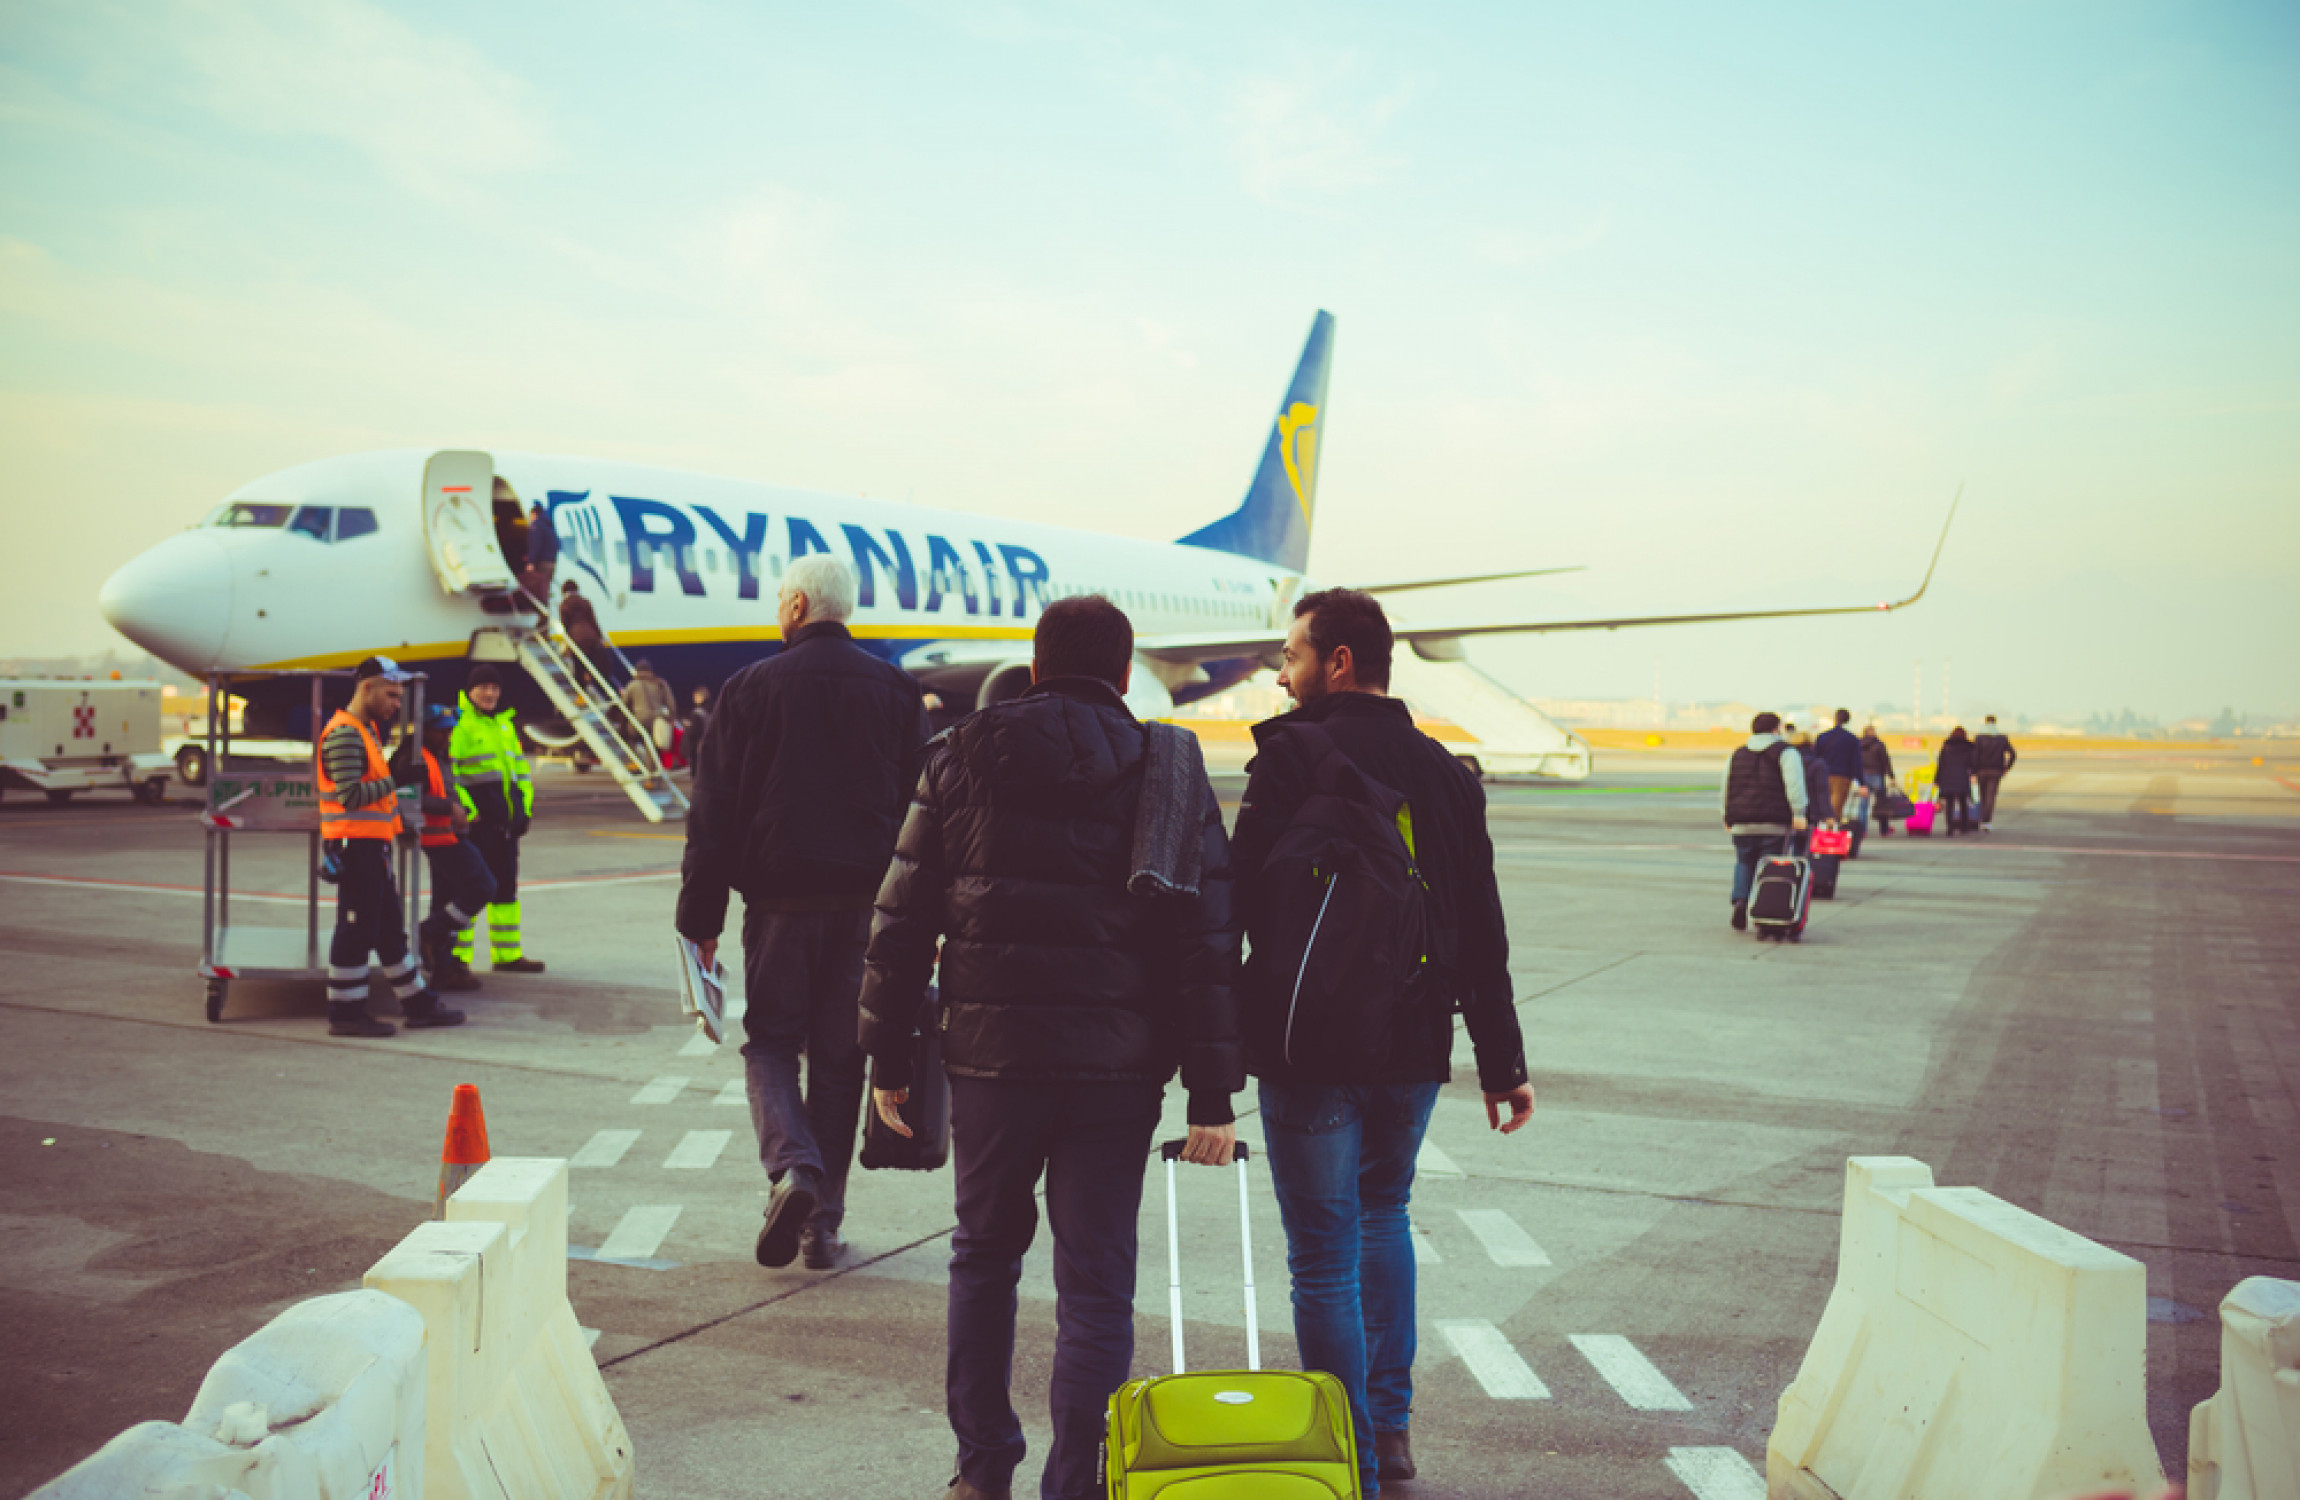 Only one small bag to be permitted on Ryanair flights